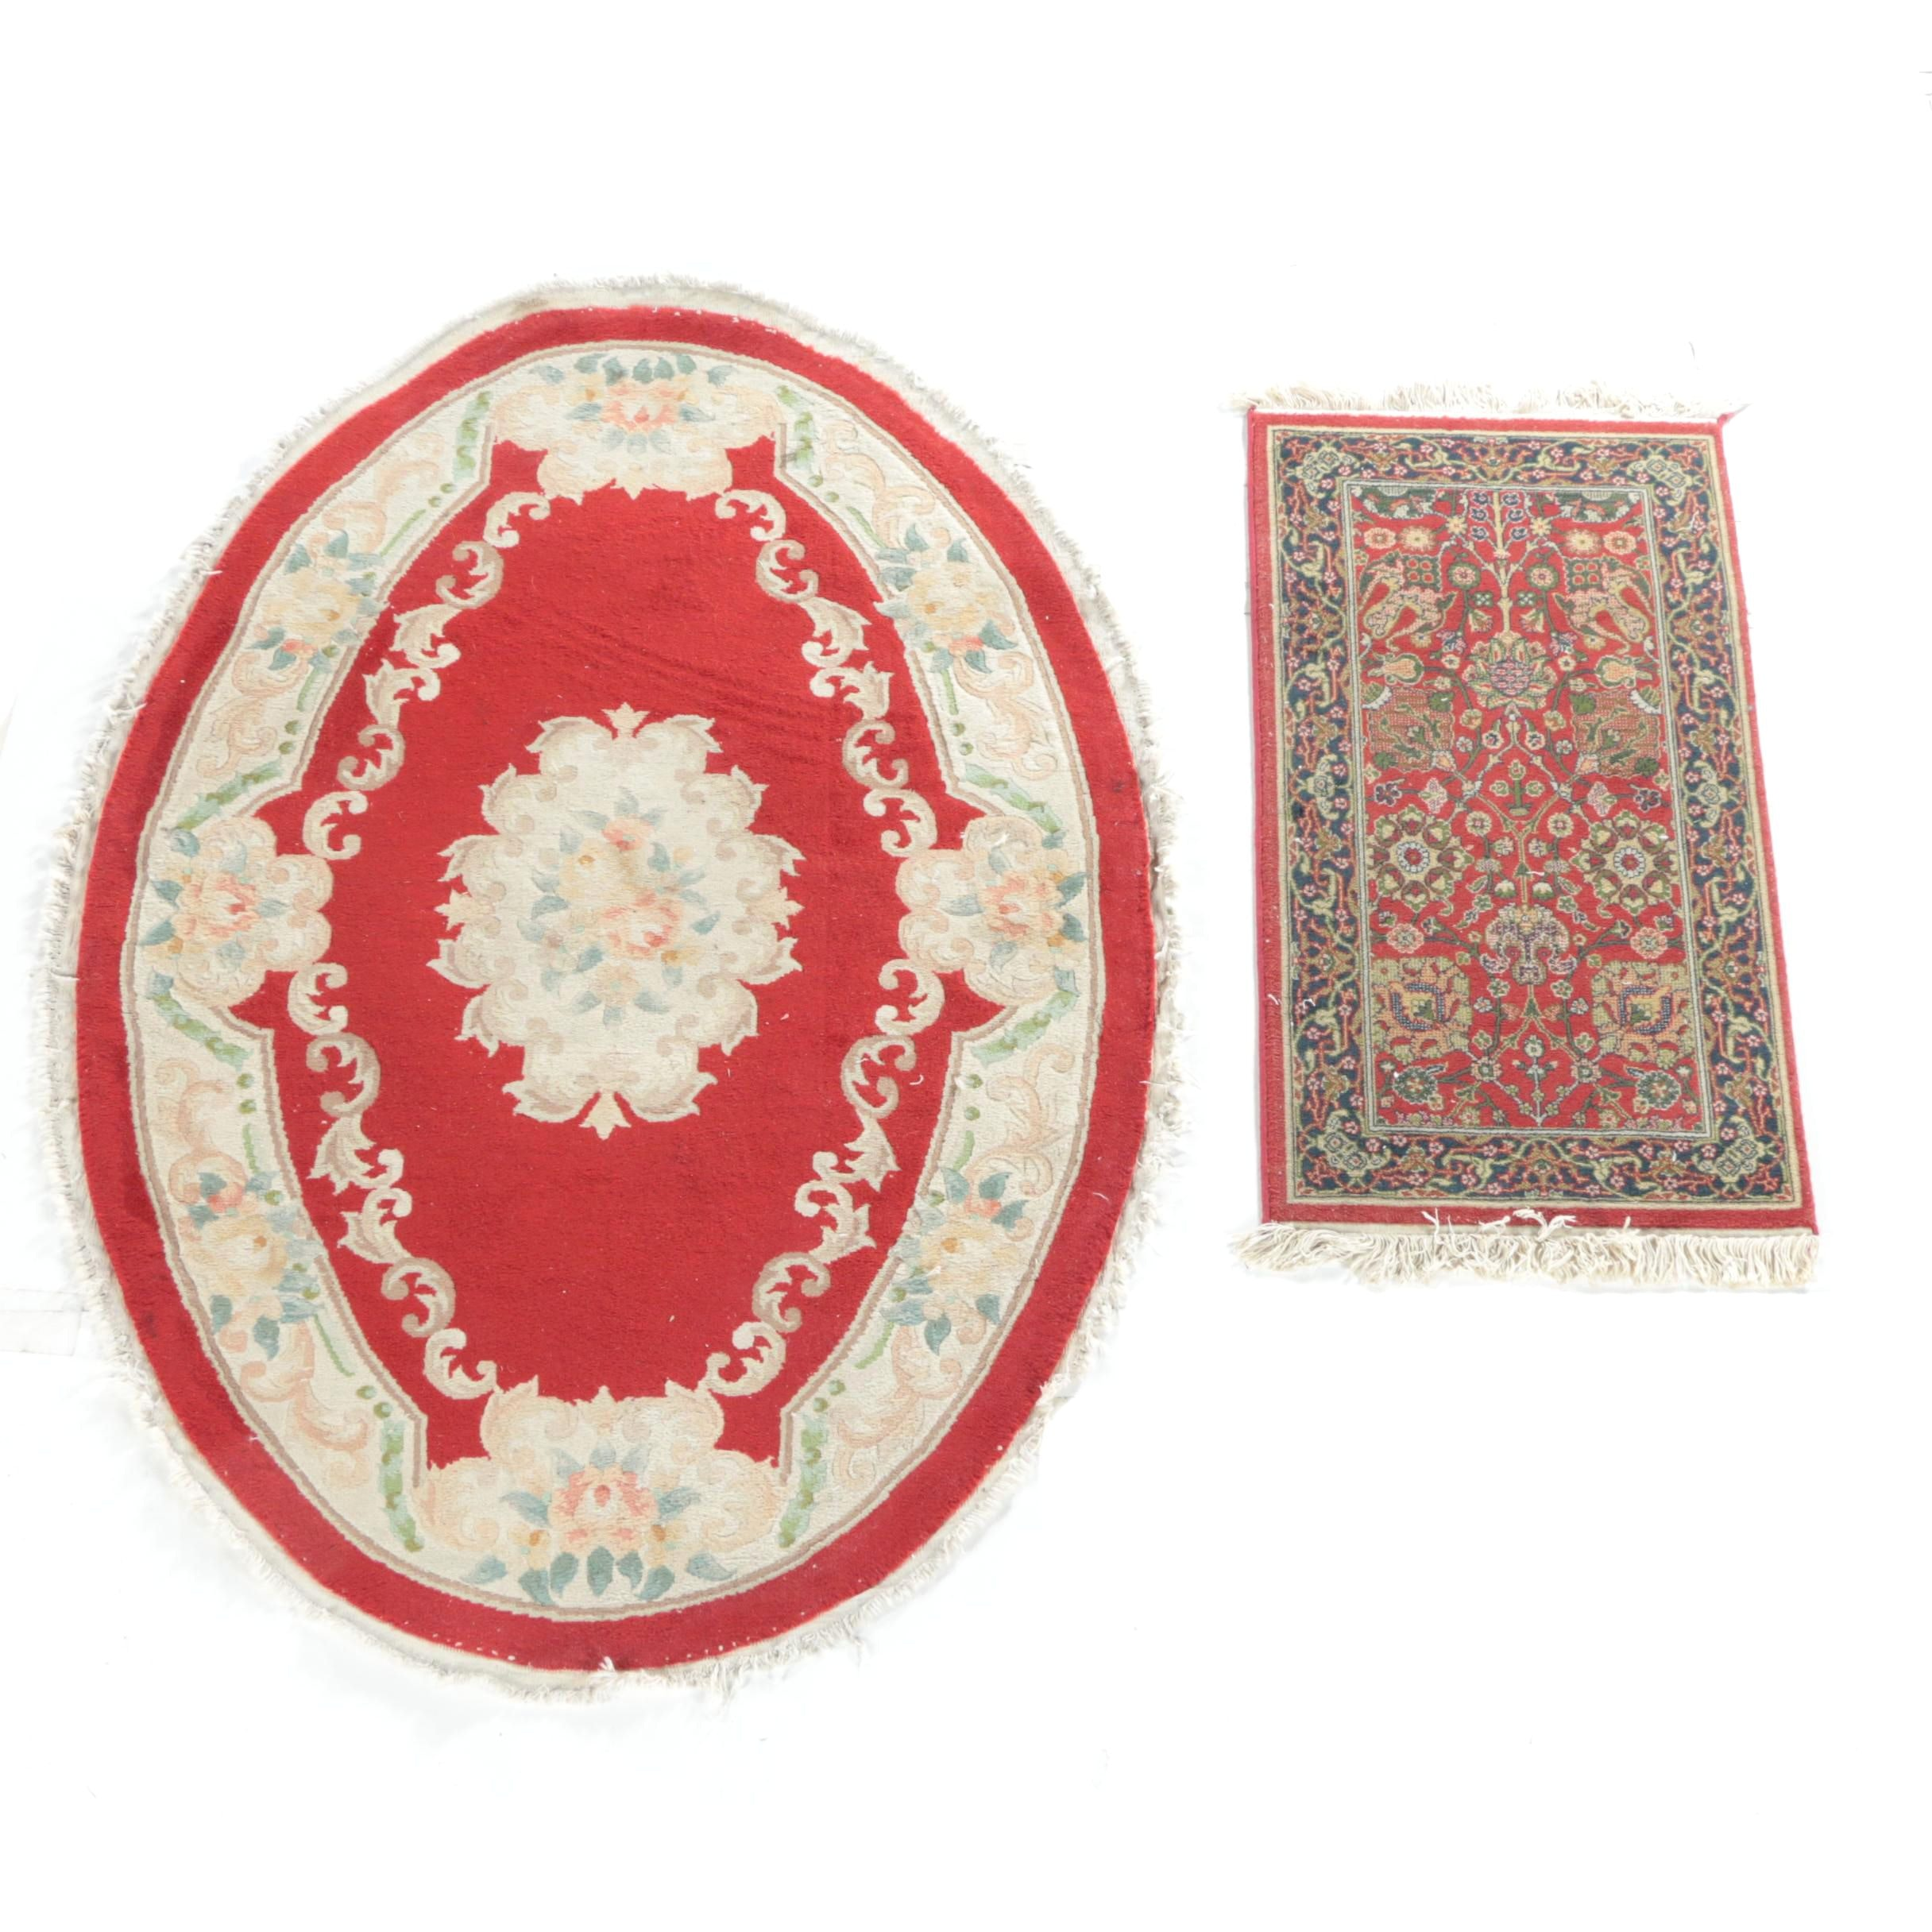 Hand-Knotted Chinese Area Rug and Power-Loomed Turkish Accent Rug